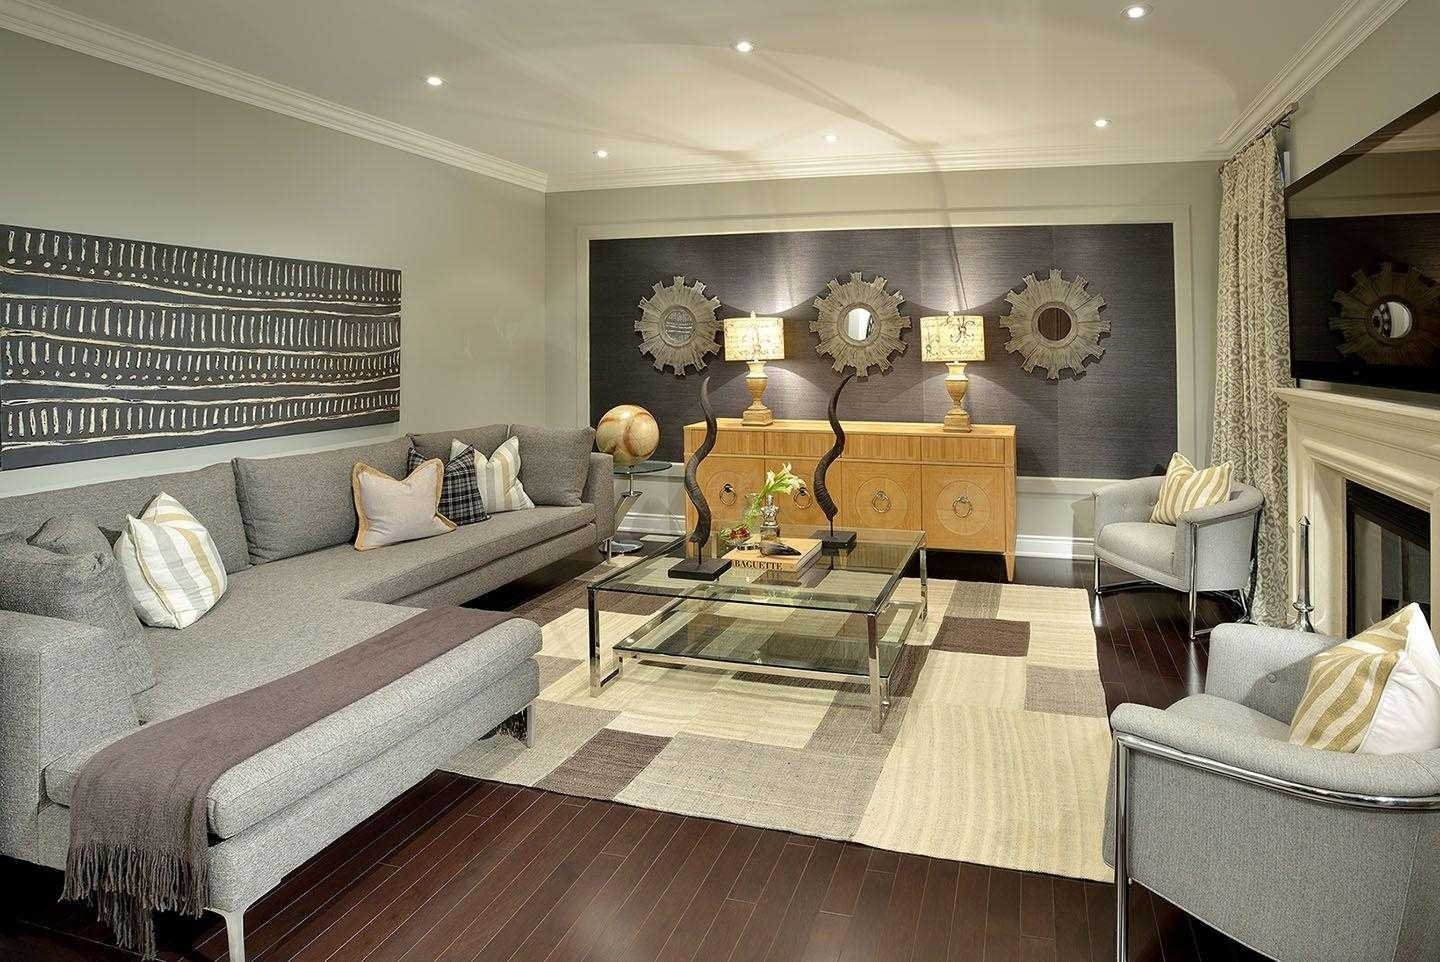 10 Lovable Decorating Ideas For Family Room wall decor ideas for family room images shaped decorating with 2021